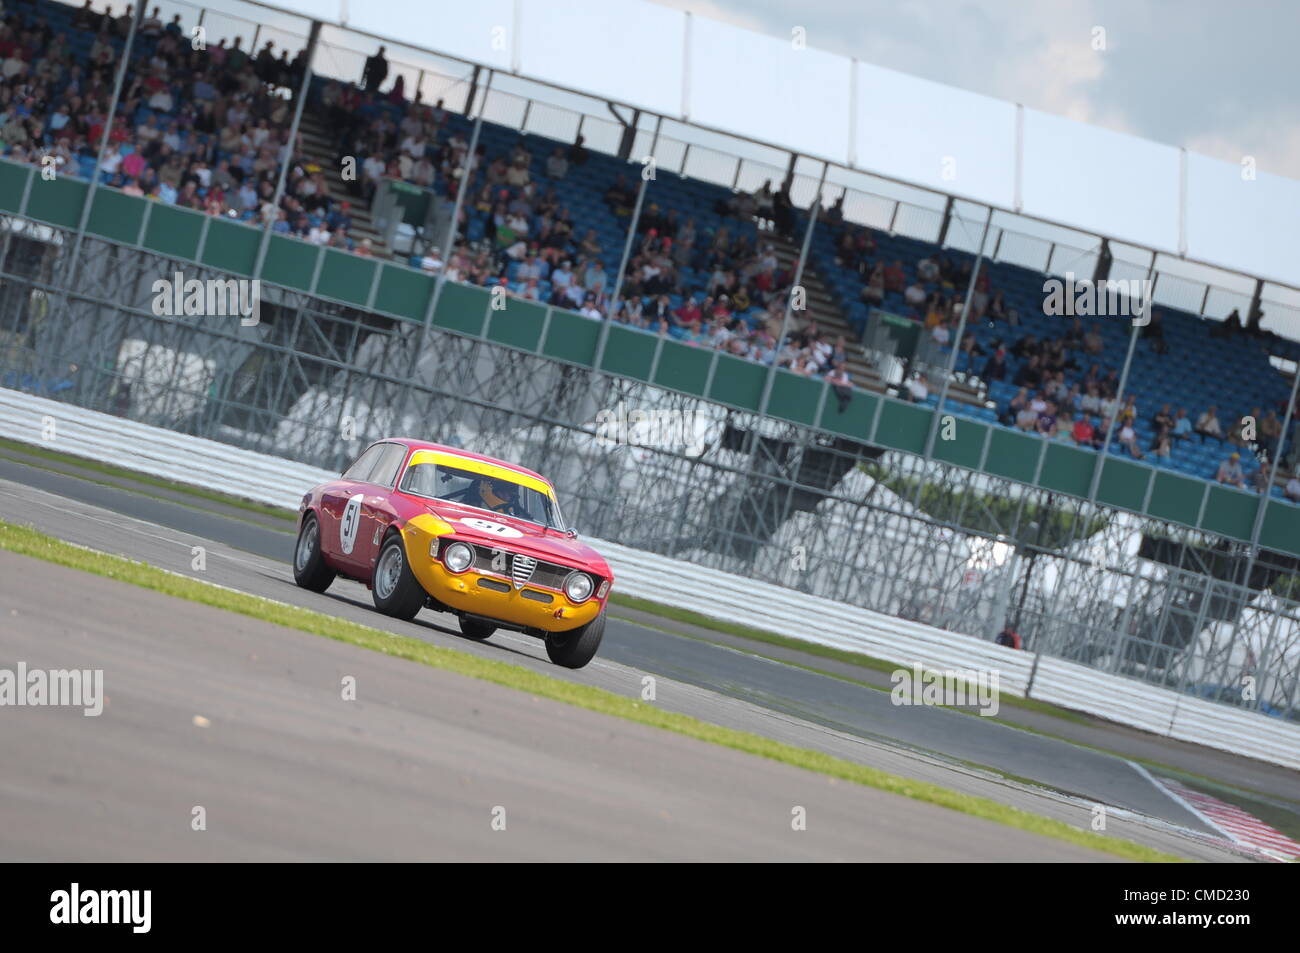 21st July 2012, Silverstone, UK Alex Furiani's Alfa Romeo  Sprint GTA during the Alan Mann Trophy for under 2 Litre Stock Photo